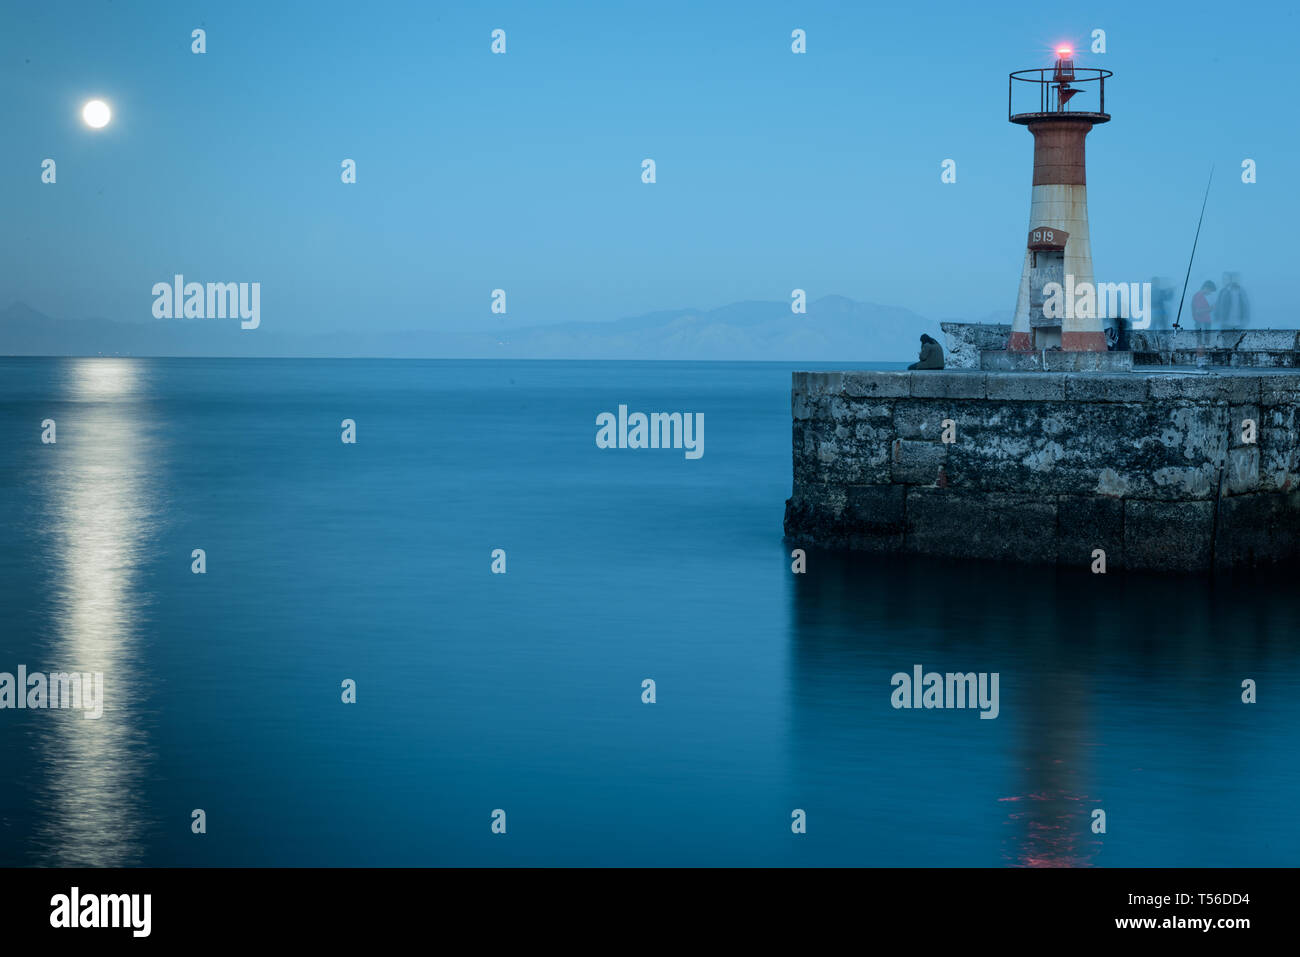 Long exposure shows activity of fishermen through ghosting, while the inactivity of a cellphone user provides a clear image in Kalk Bay, South Africa - Stock Image